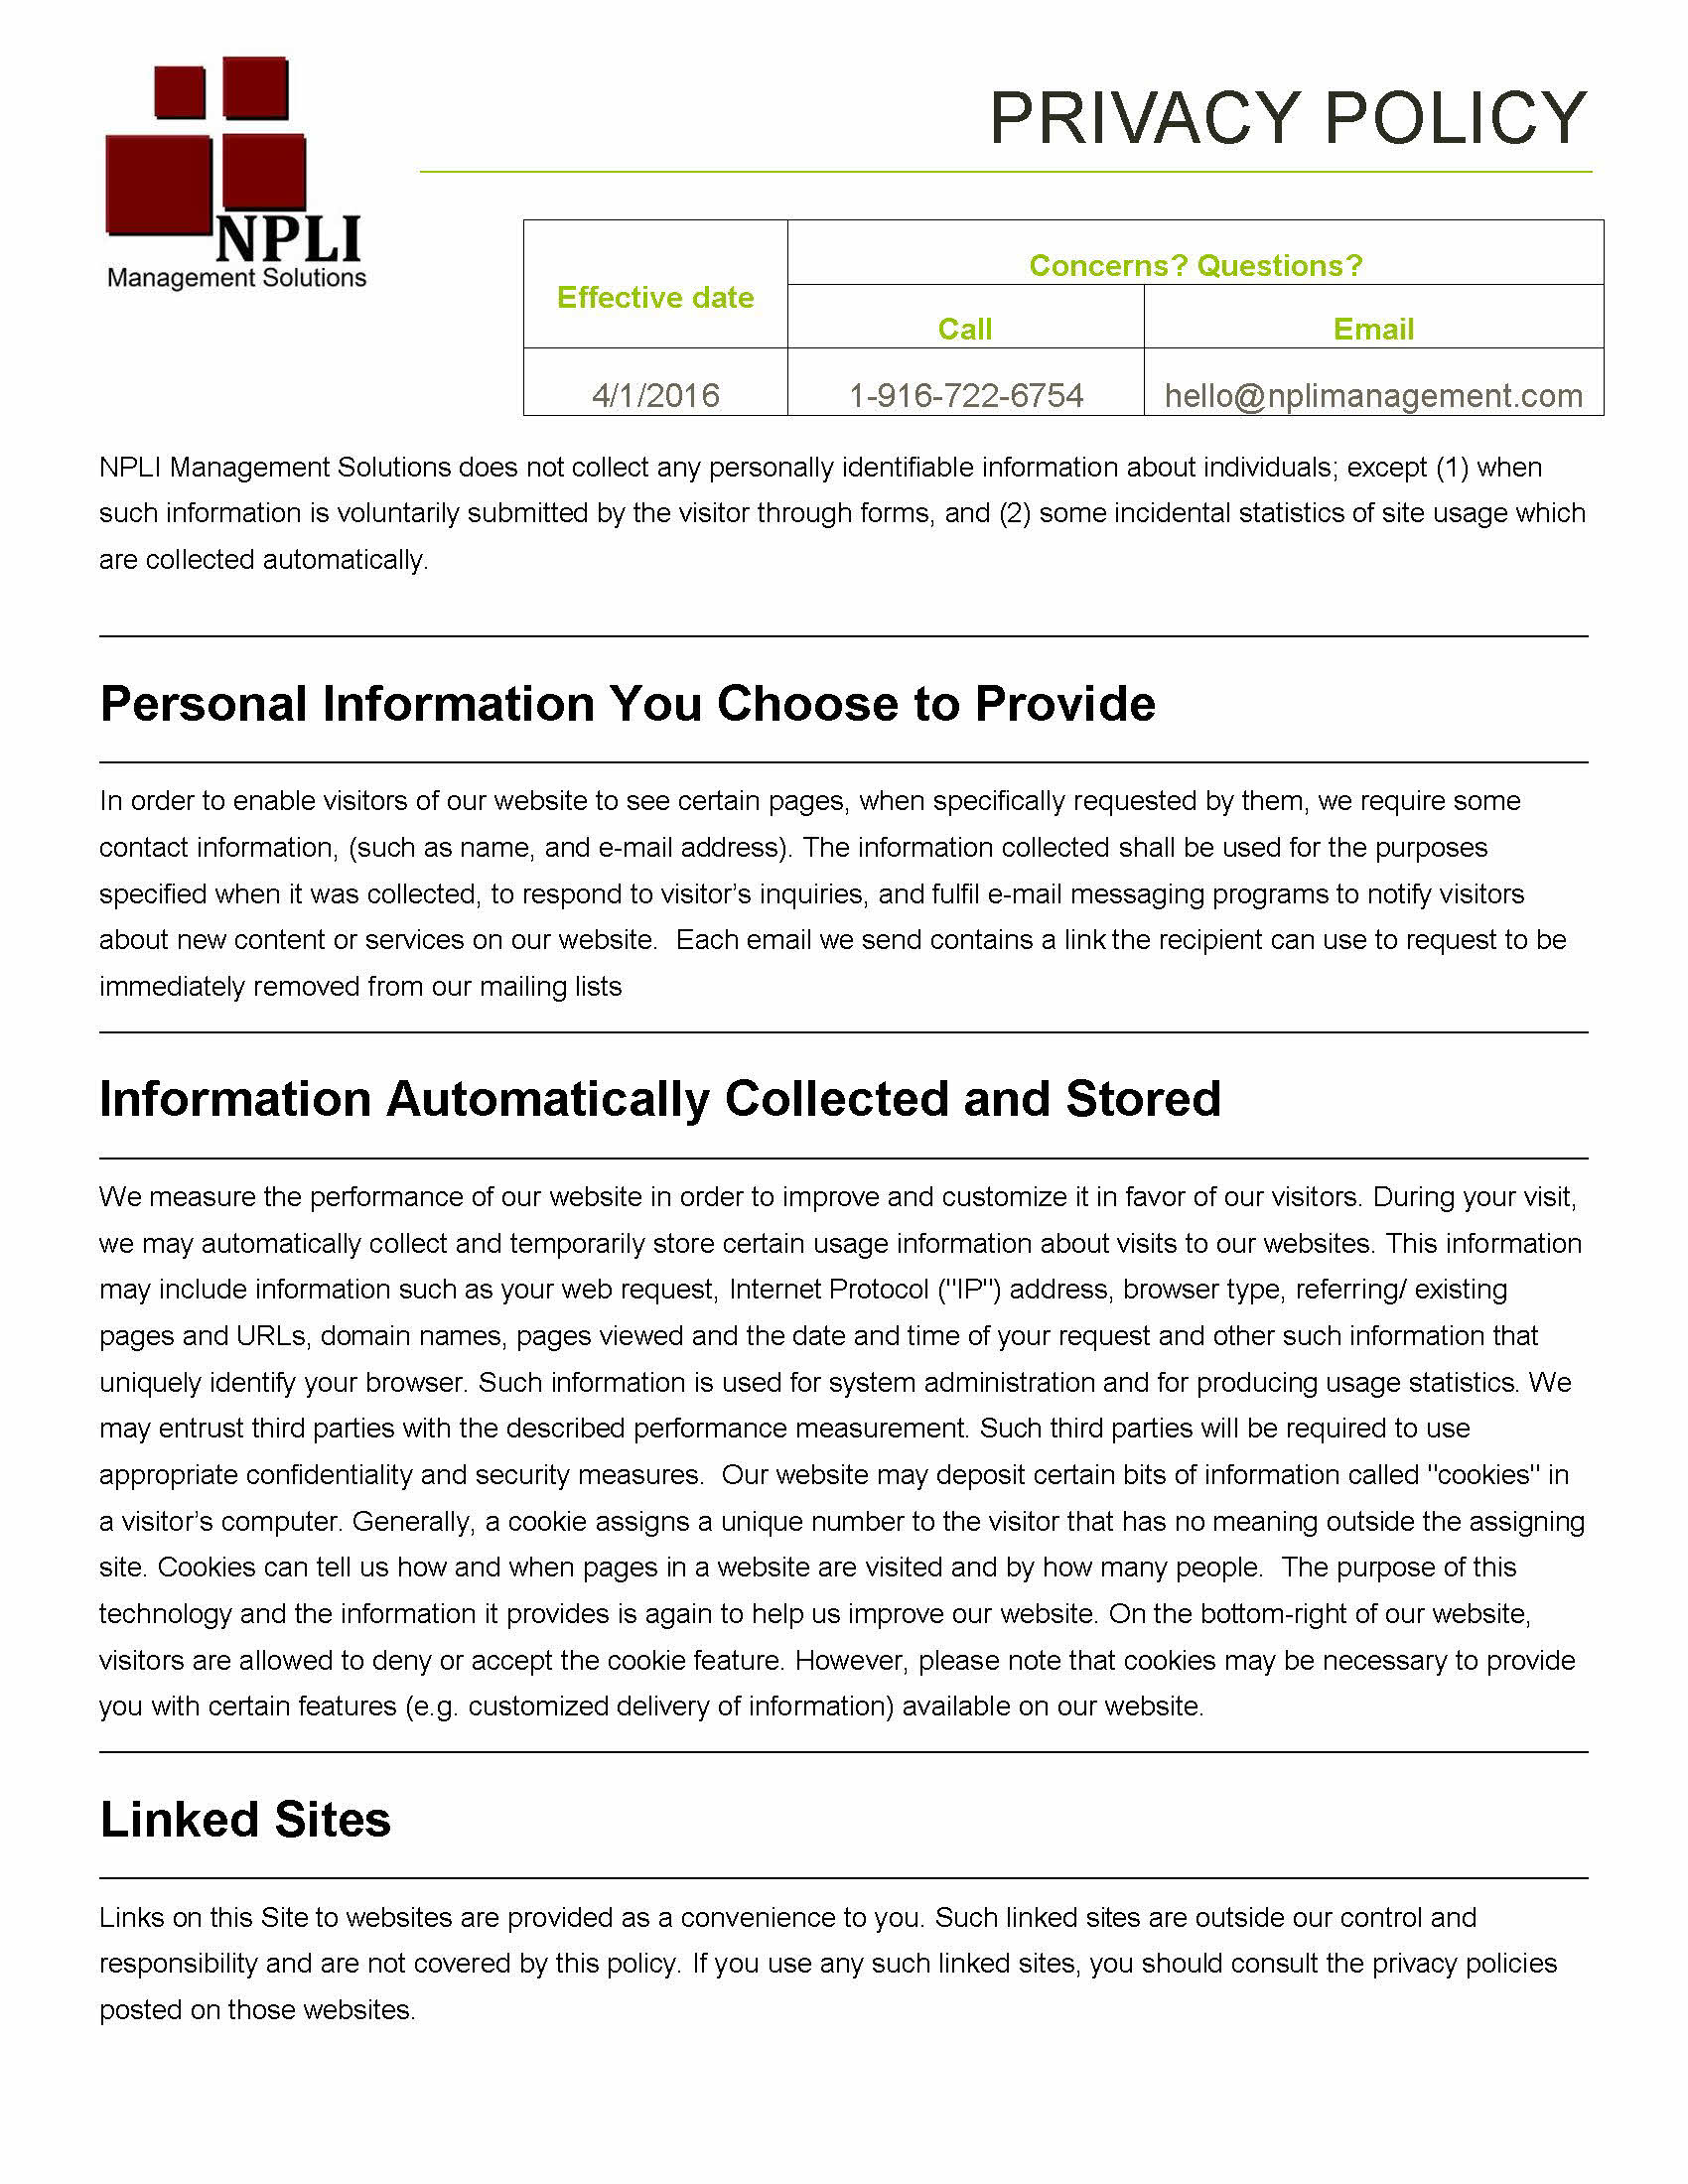 NPLI Management Solutions, Inc.'s Privacy Policy